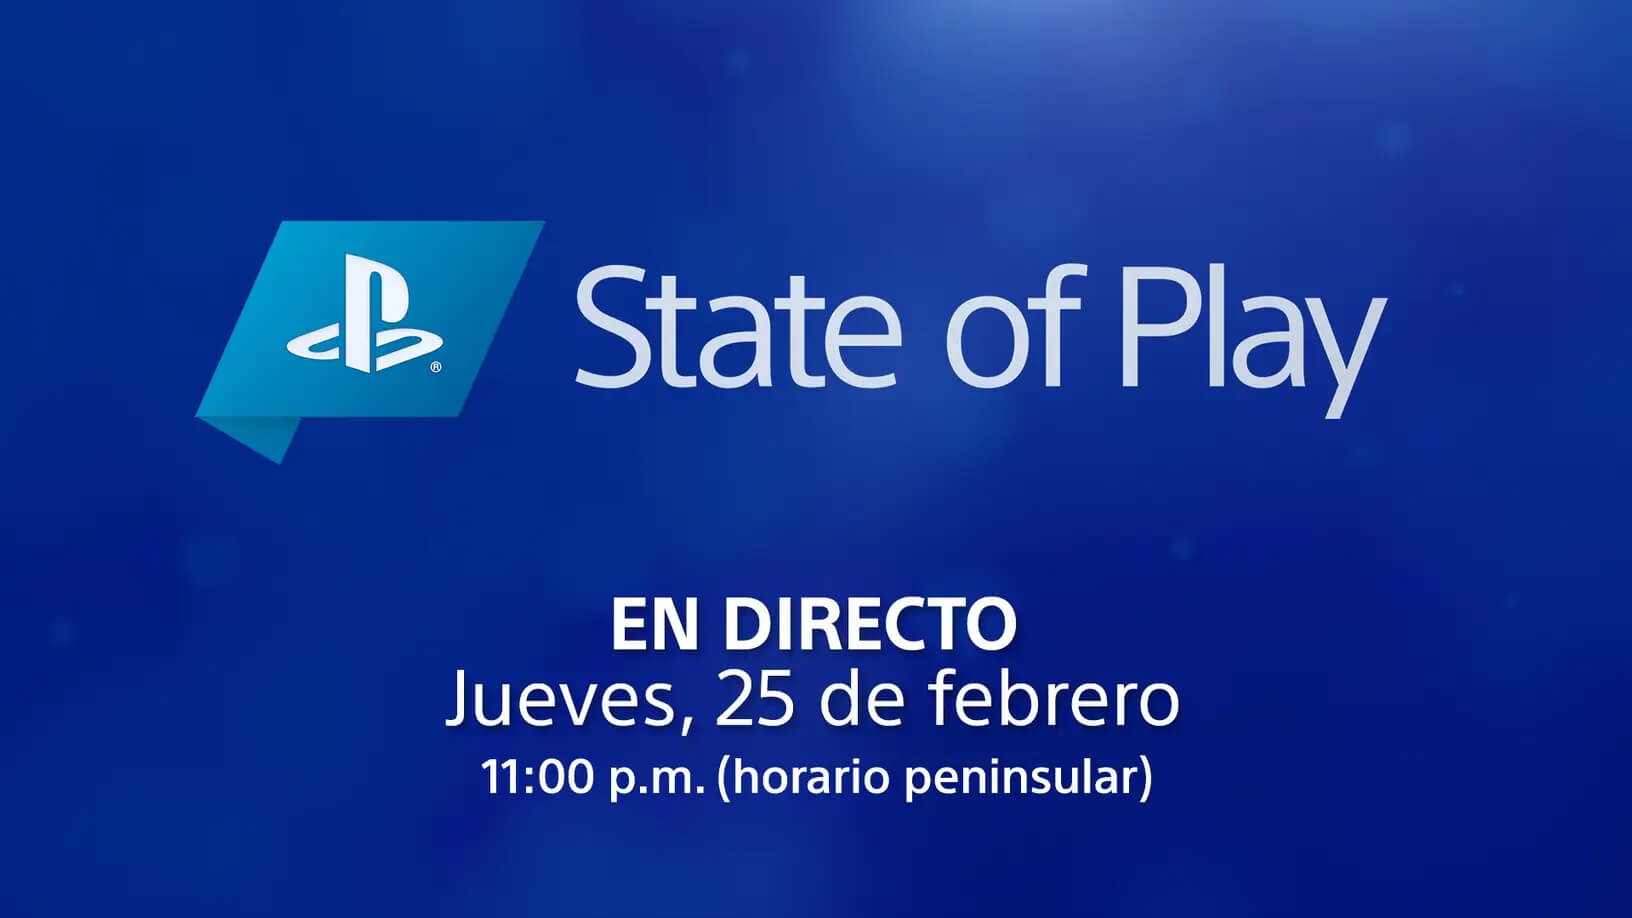 State of Play: Consulta la hora y dónde ver el evento de PlayStation